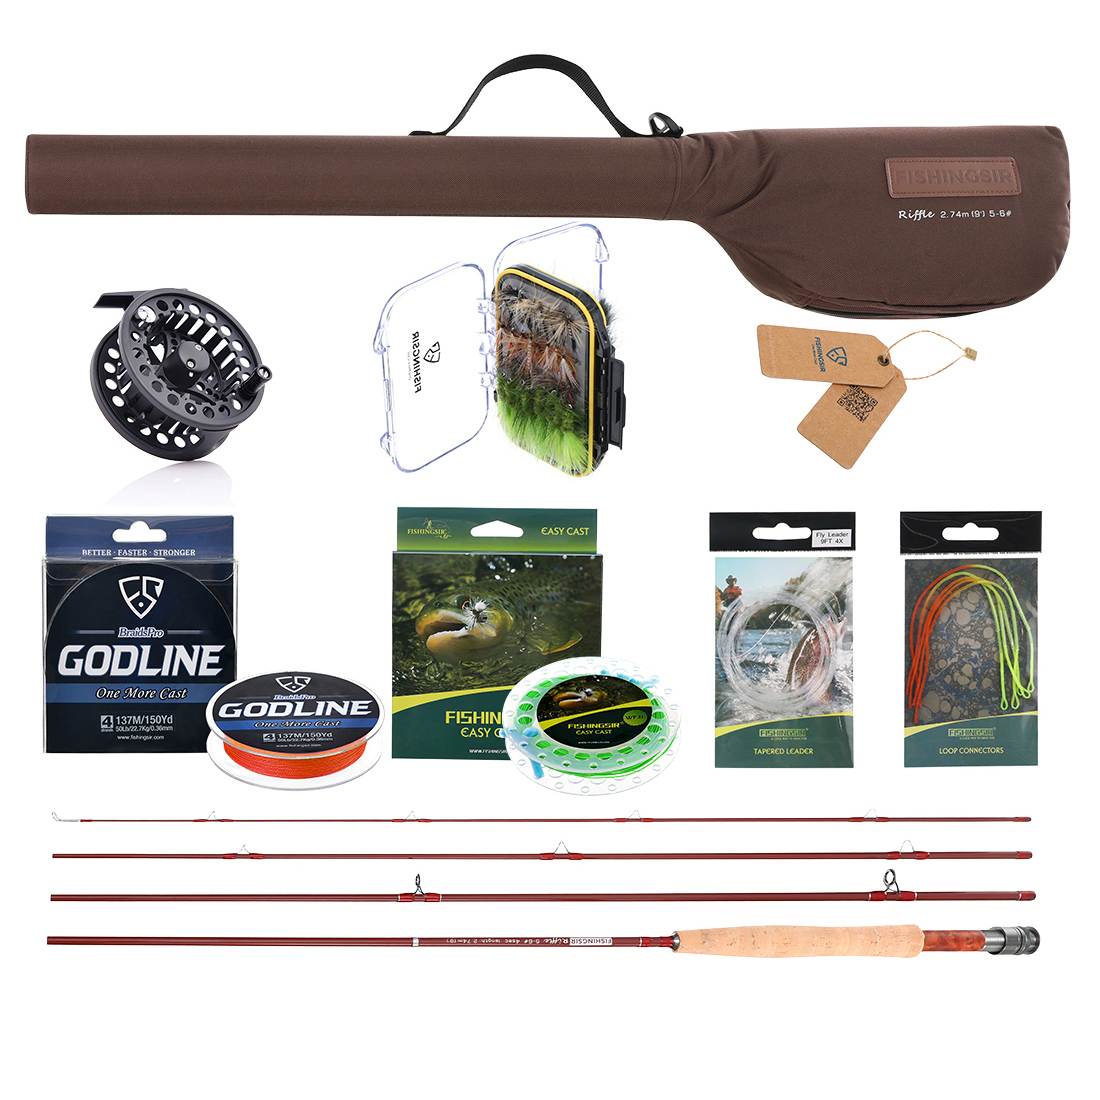 Fly <font><b>Fishing</b></font> Reels Rod 3/4 5/6 Pole Lures Line Fly <font><b>Fishing</b></font> Tackle Combo Kit Set Pesca Reel Wheel Lure Flies Wire Gear Accessories